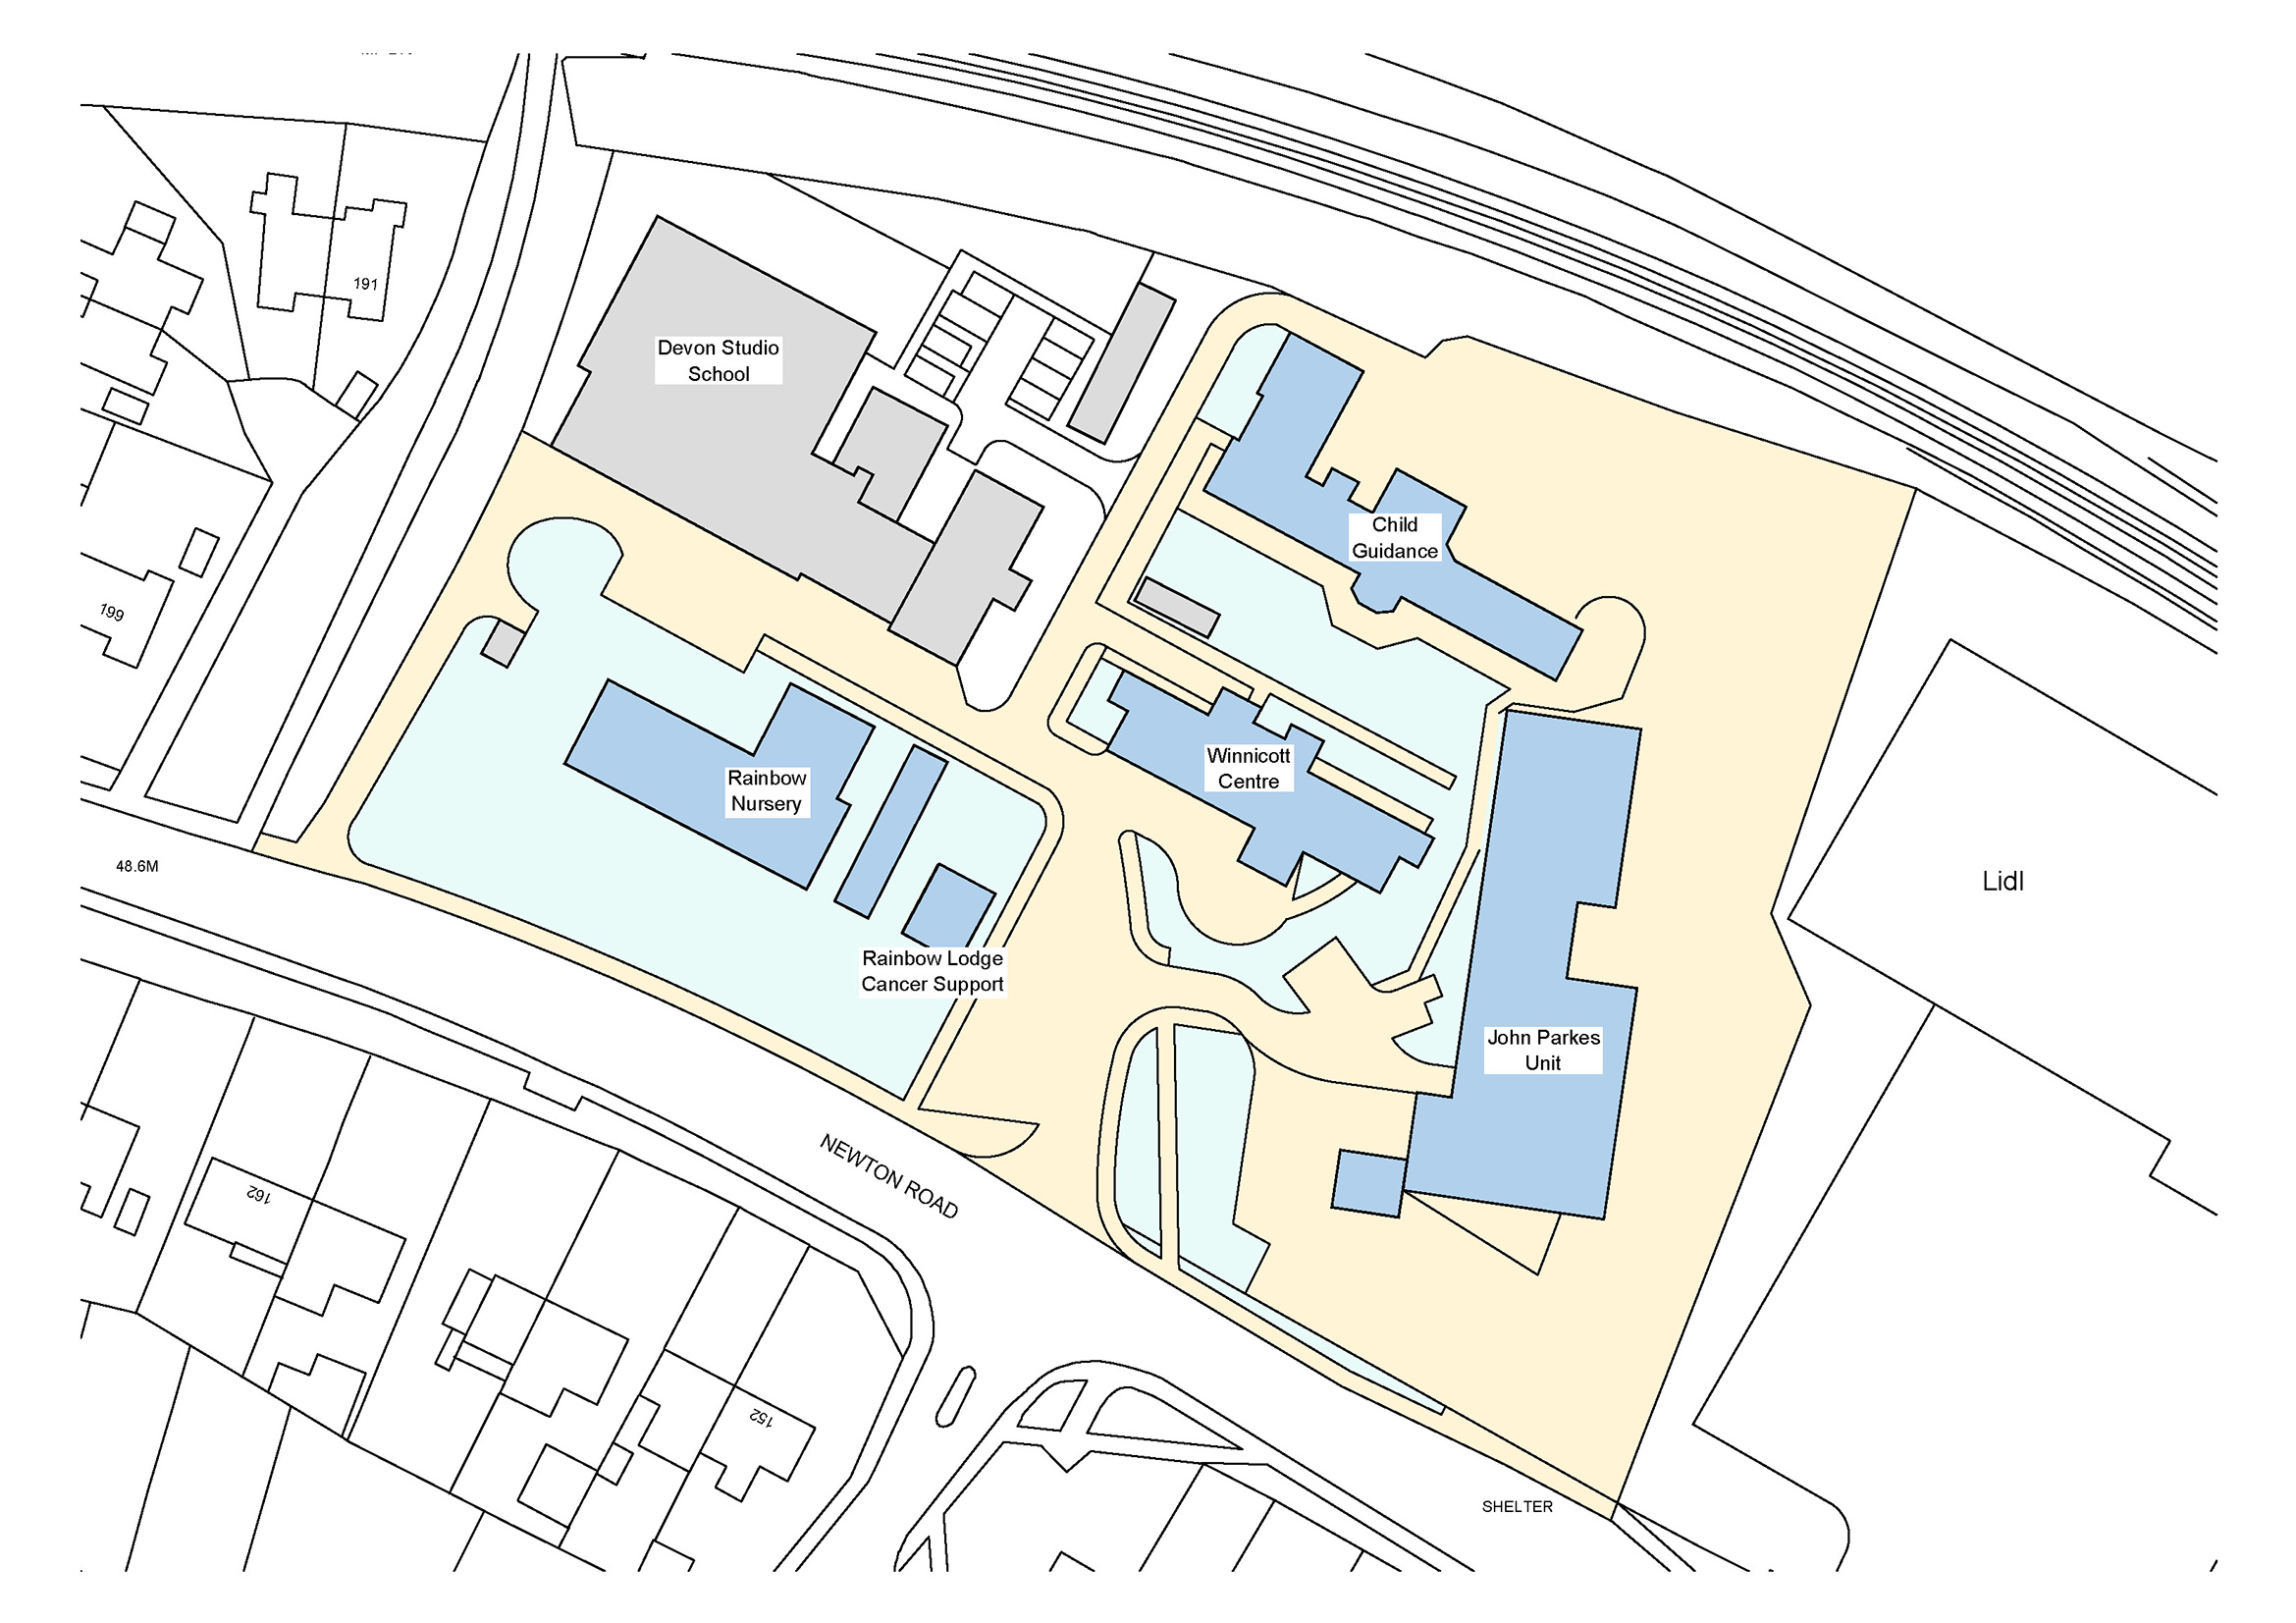 Torbay Hospital maps - Torbay and South Devon NHS Foundation